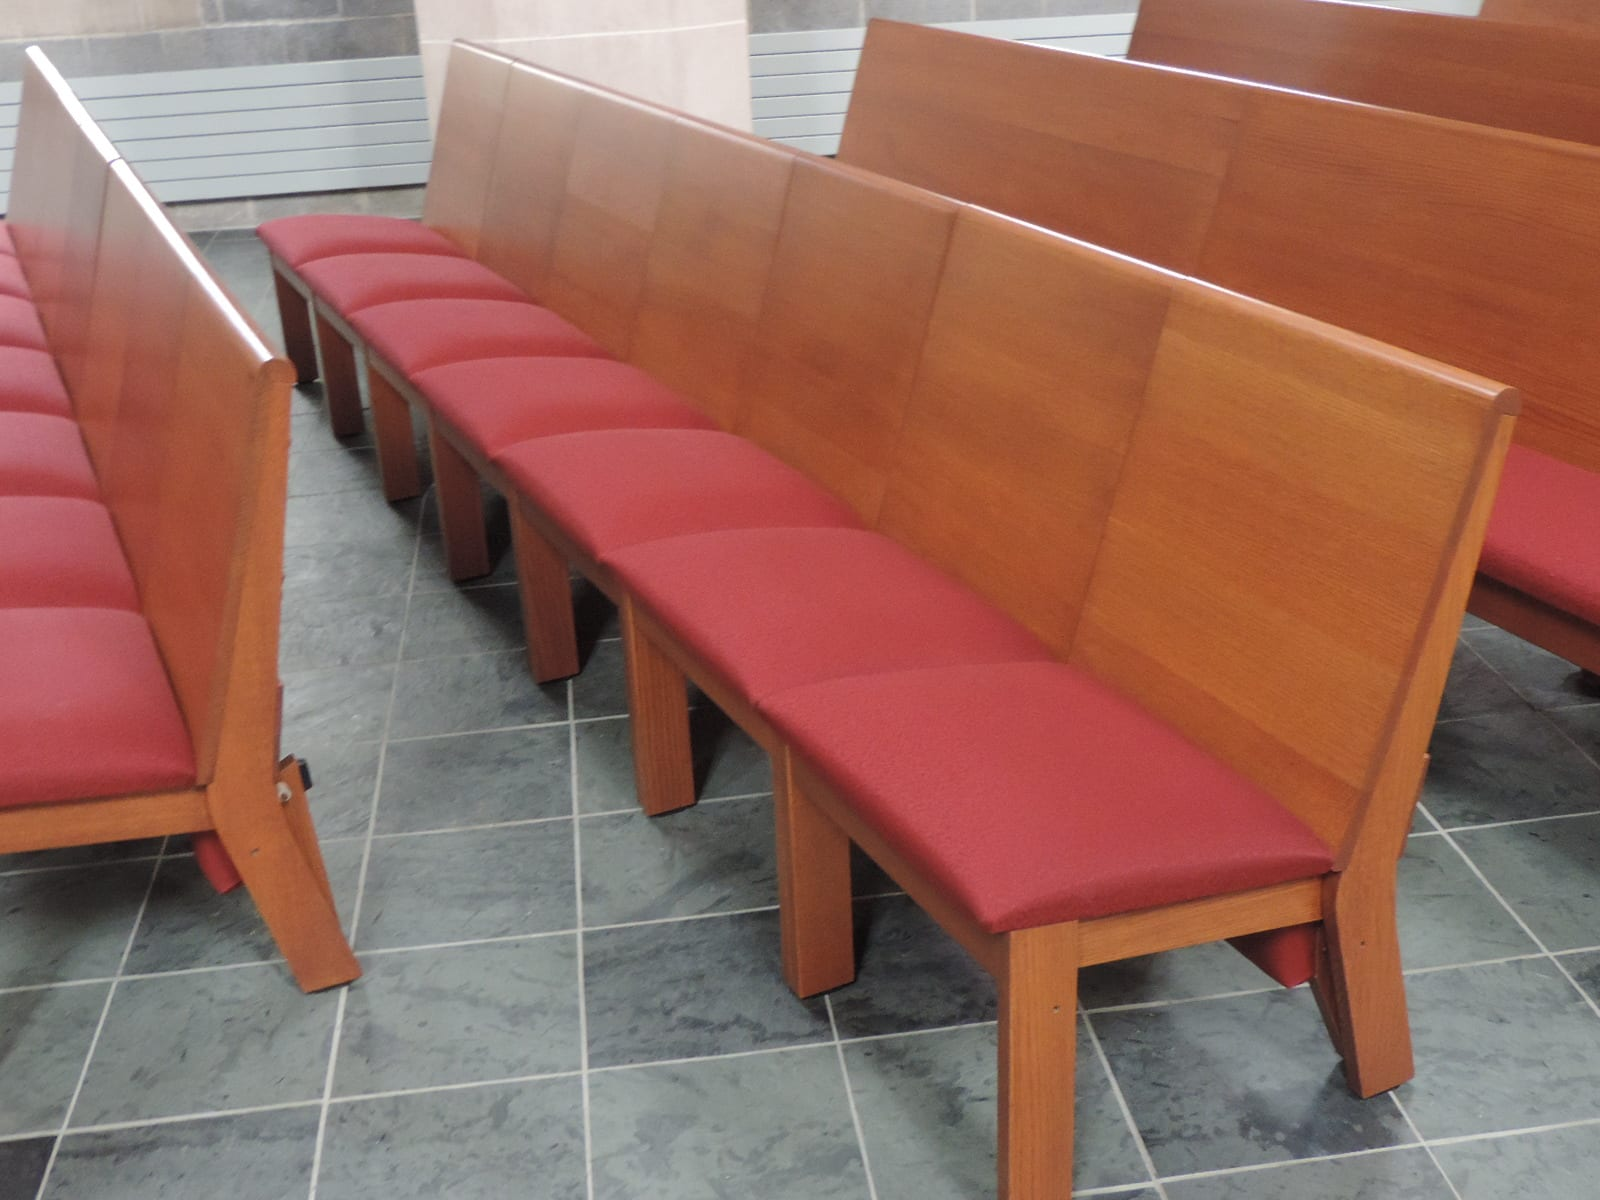 Marvelous Stackable Wood Chairs New Holland Church Furniture Caraccident5 Cool Chair Designs And Ideas Caraccident5Info